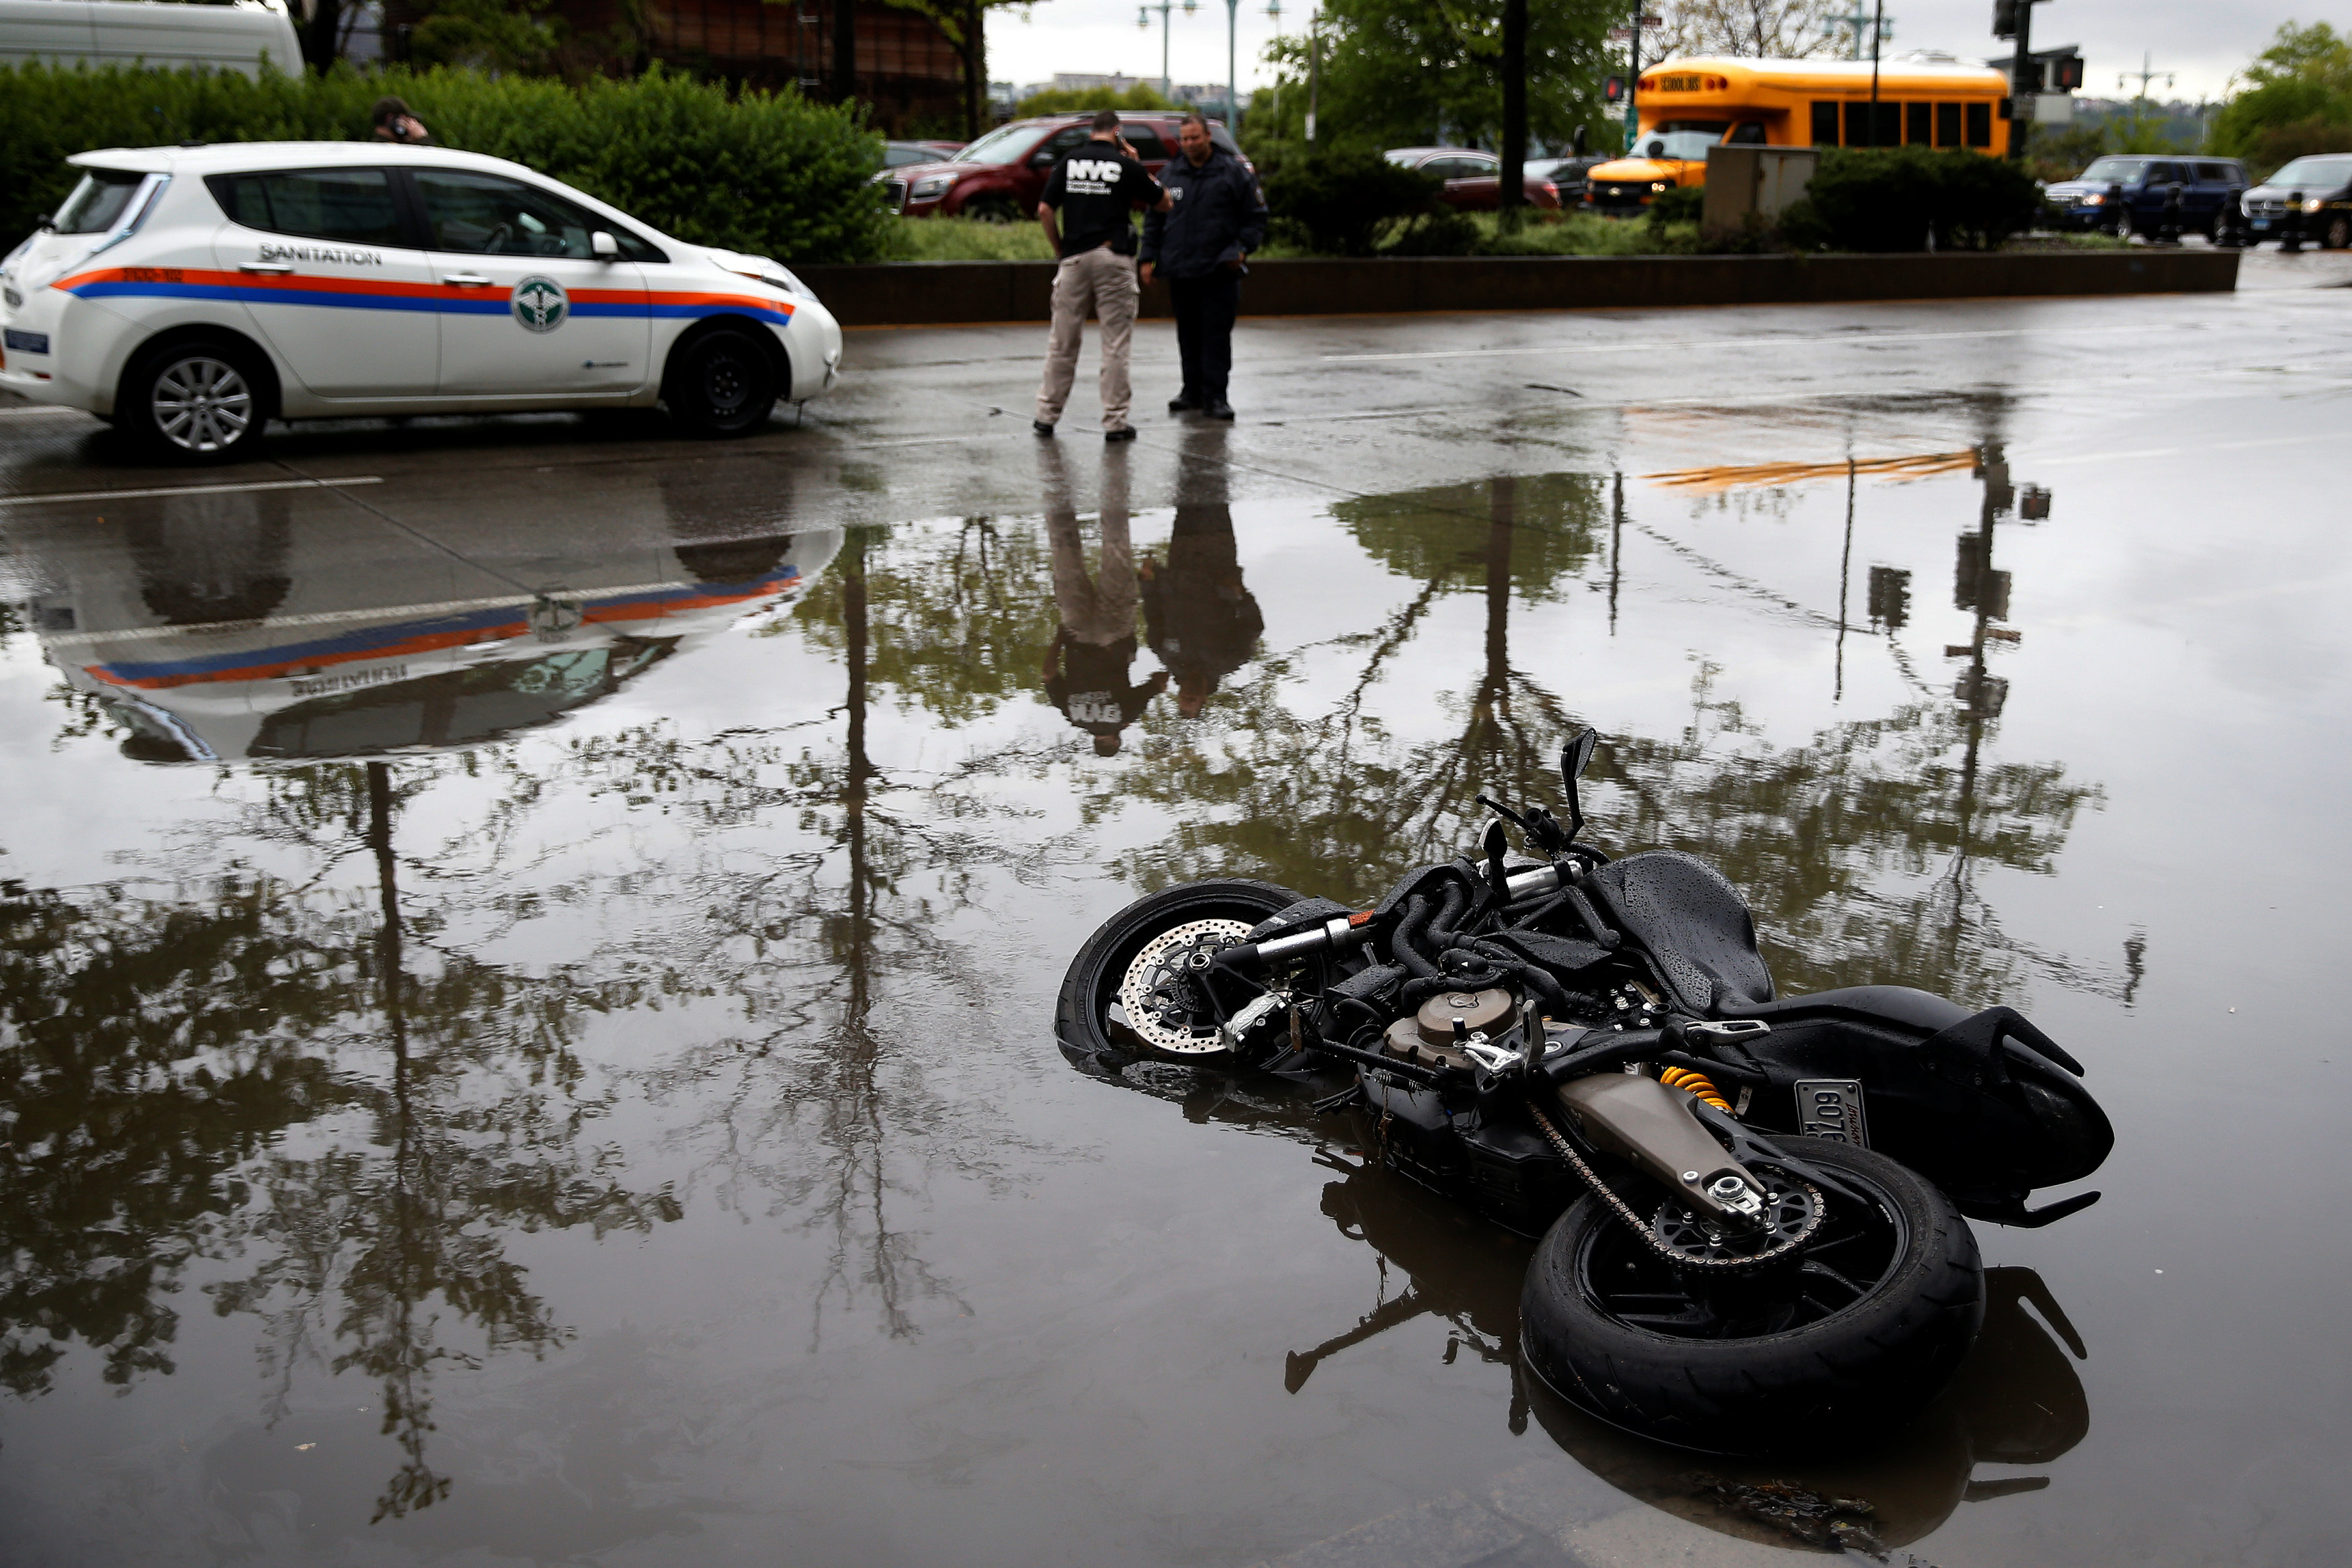 A motorcycle is seen in water on the West Side Highway after heavy rain in the Manhattan borough of New York, U.S., May 5, 2017.REUTERS/Carlo Allegri